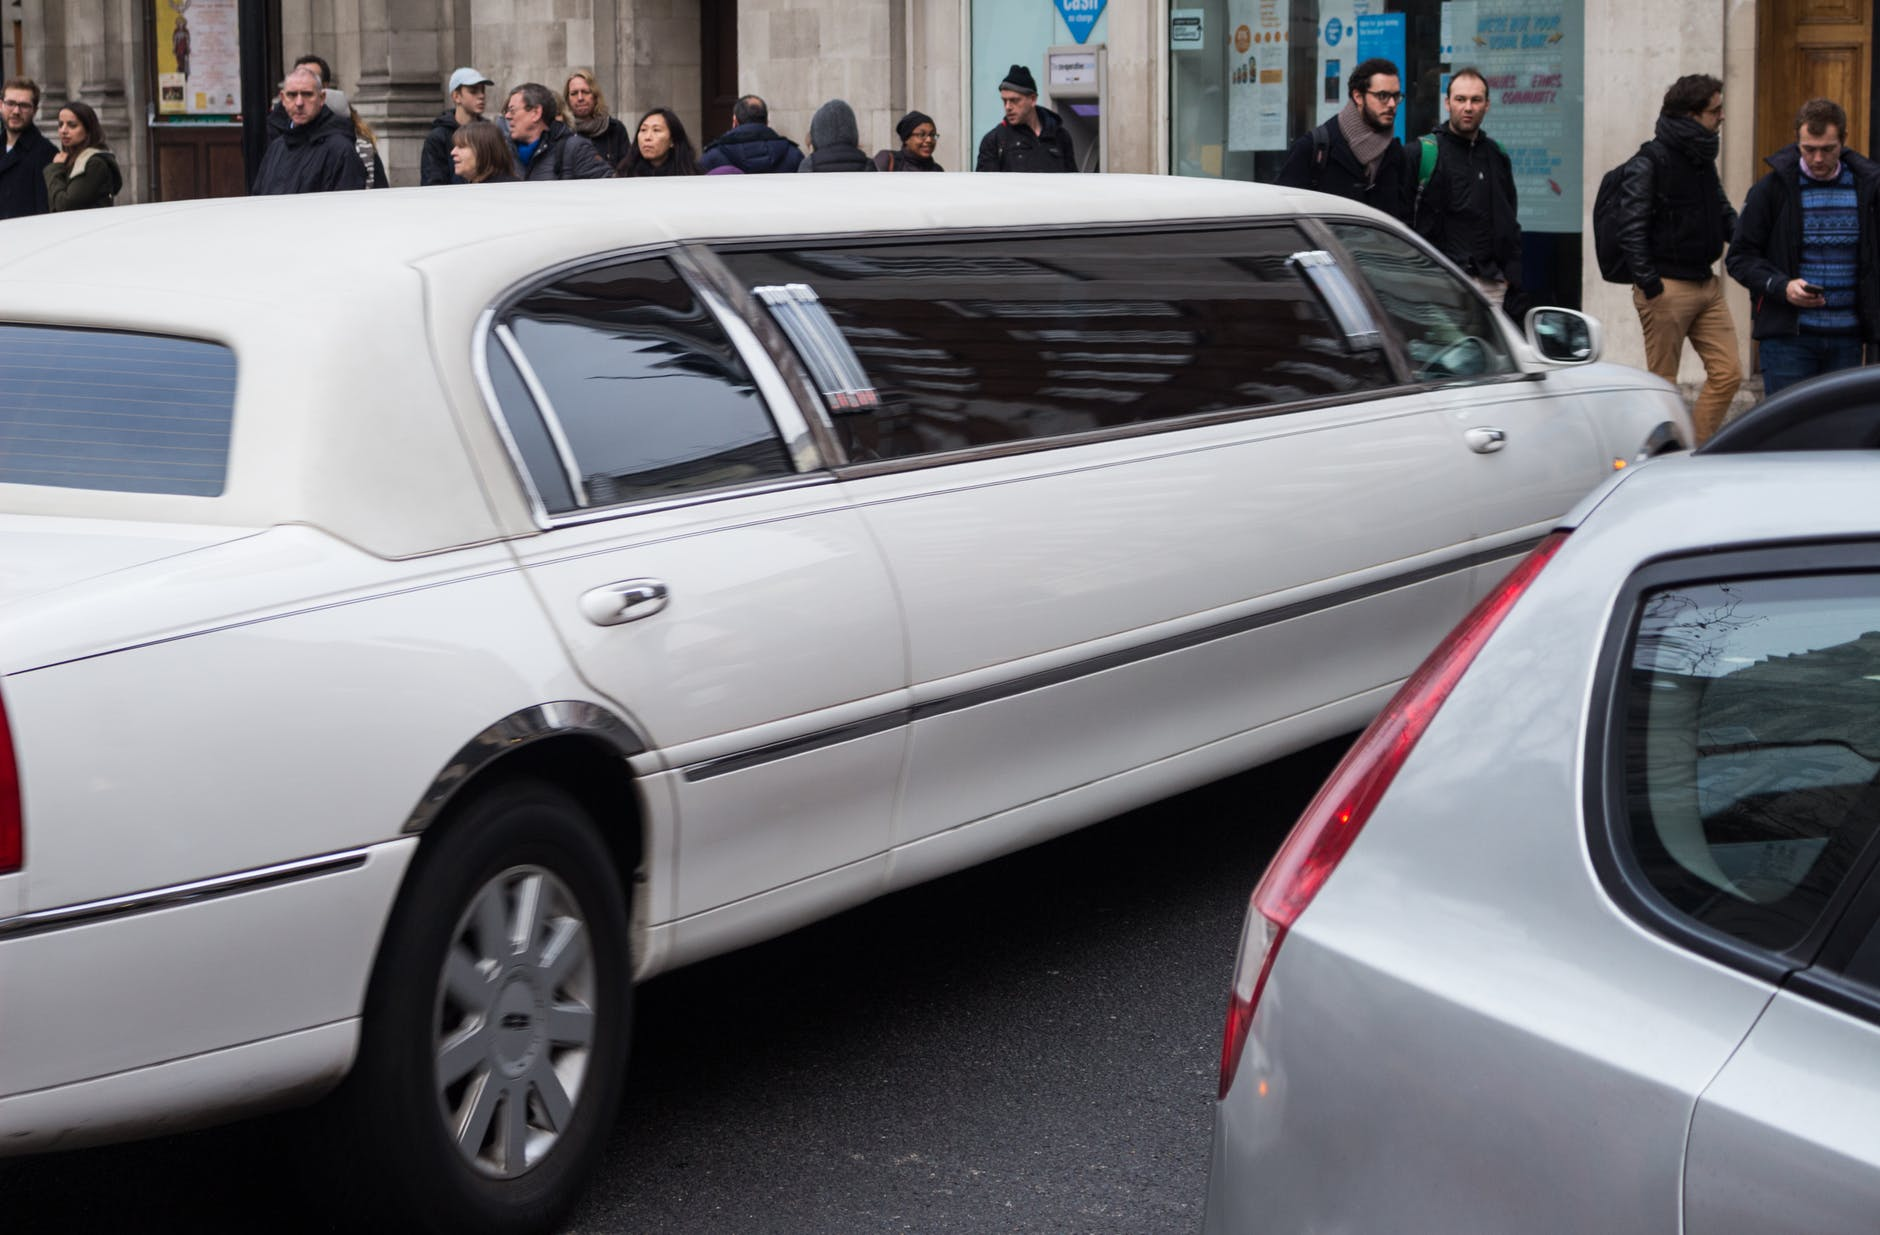 The Best SEO for Limousine Service in May 2020 - Best Firms